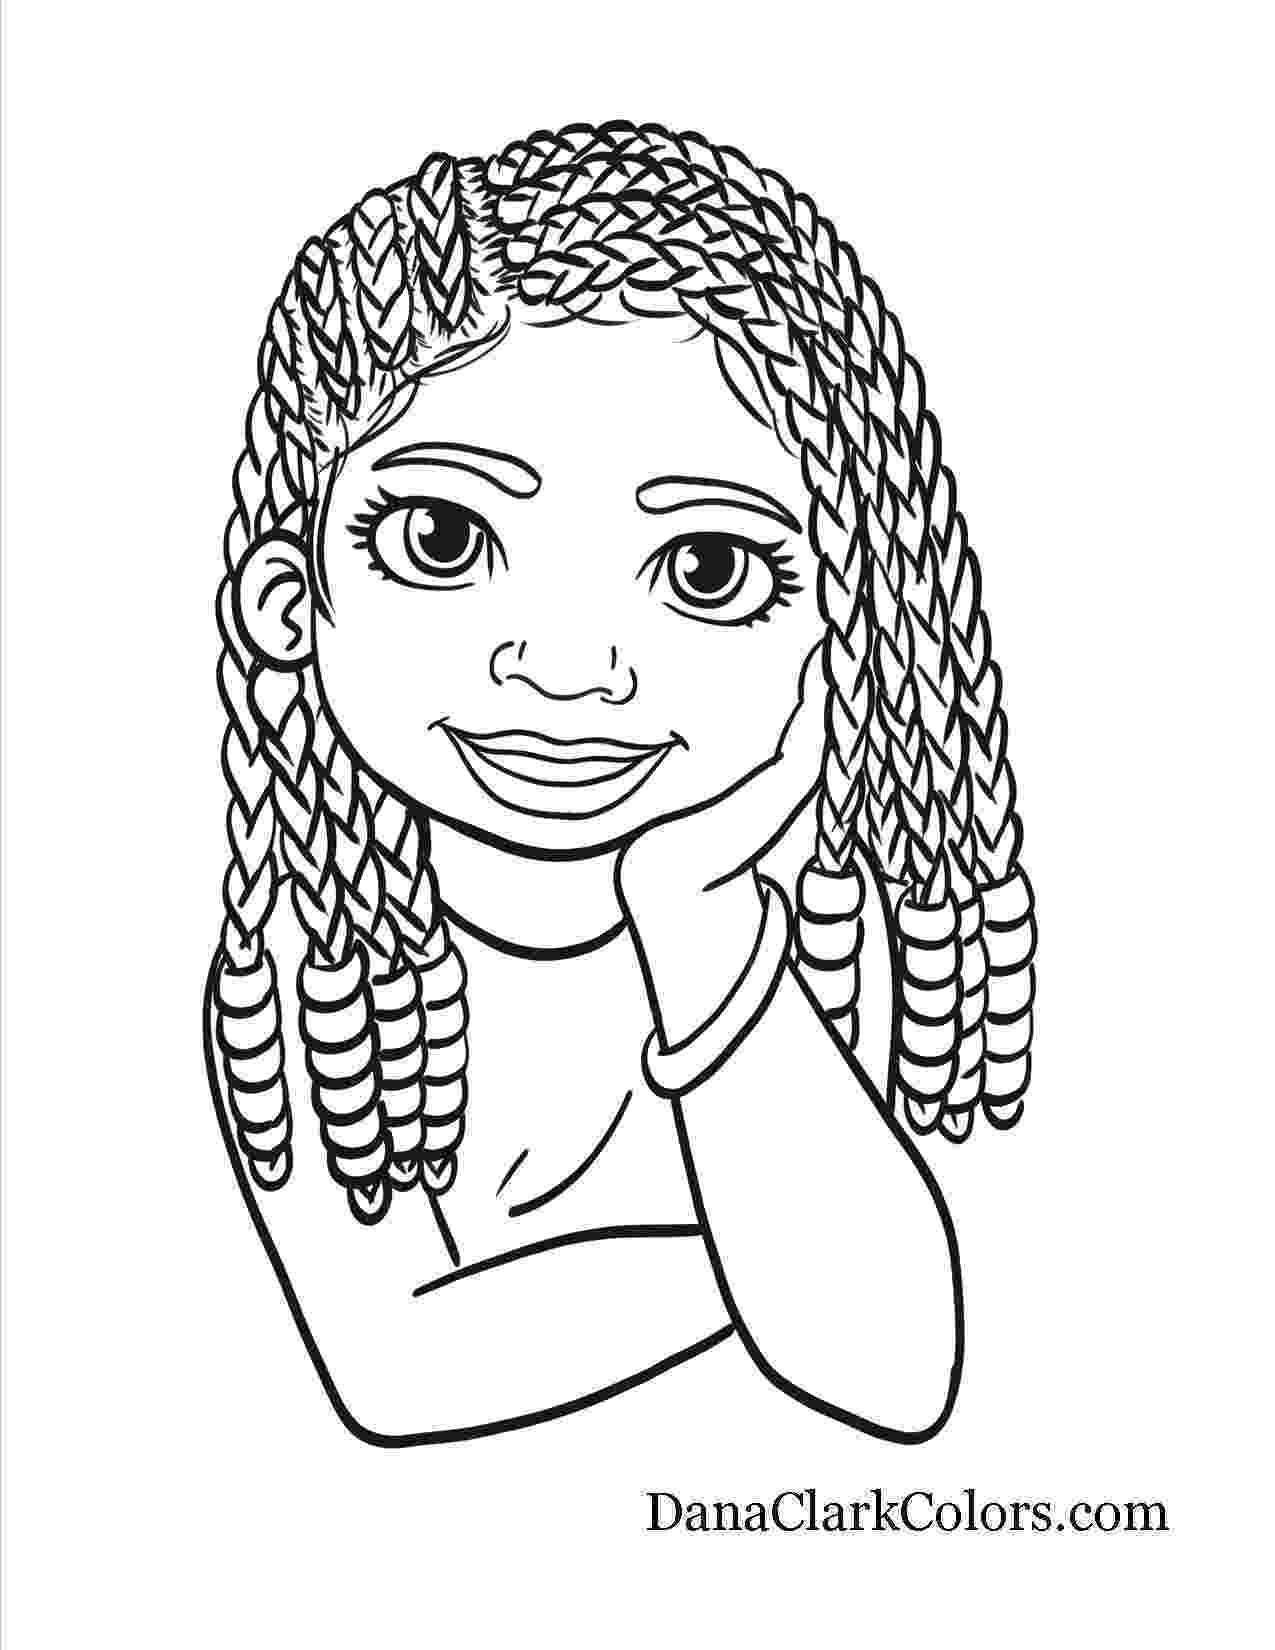 people coloring sheets famous people online coloring pages page 1 people sheets coloring